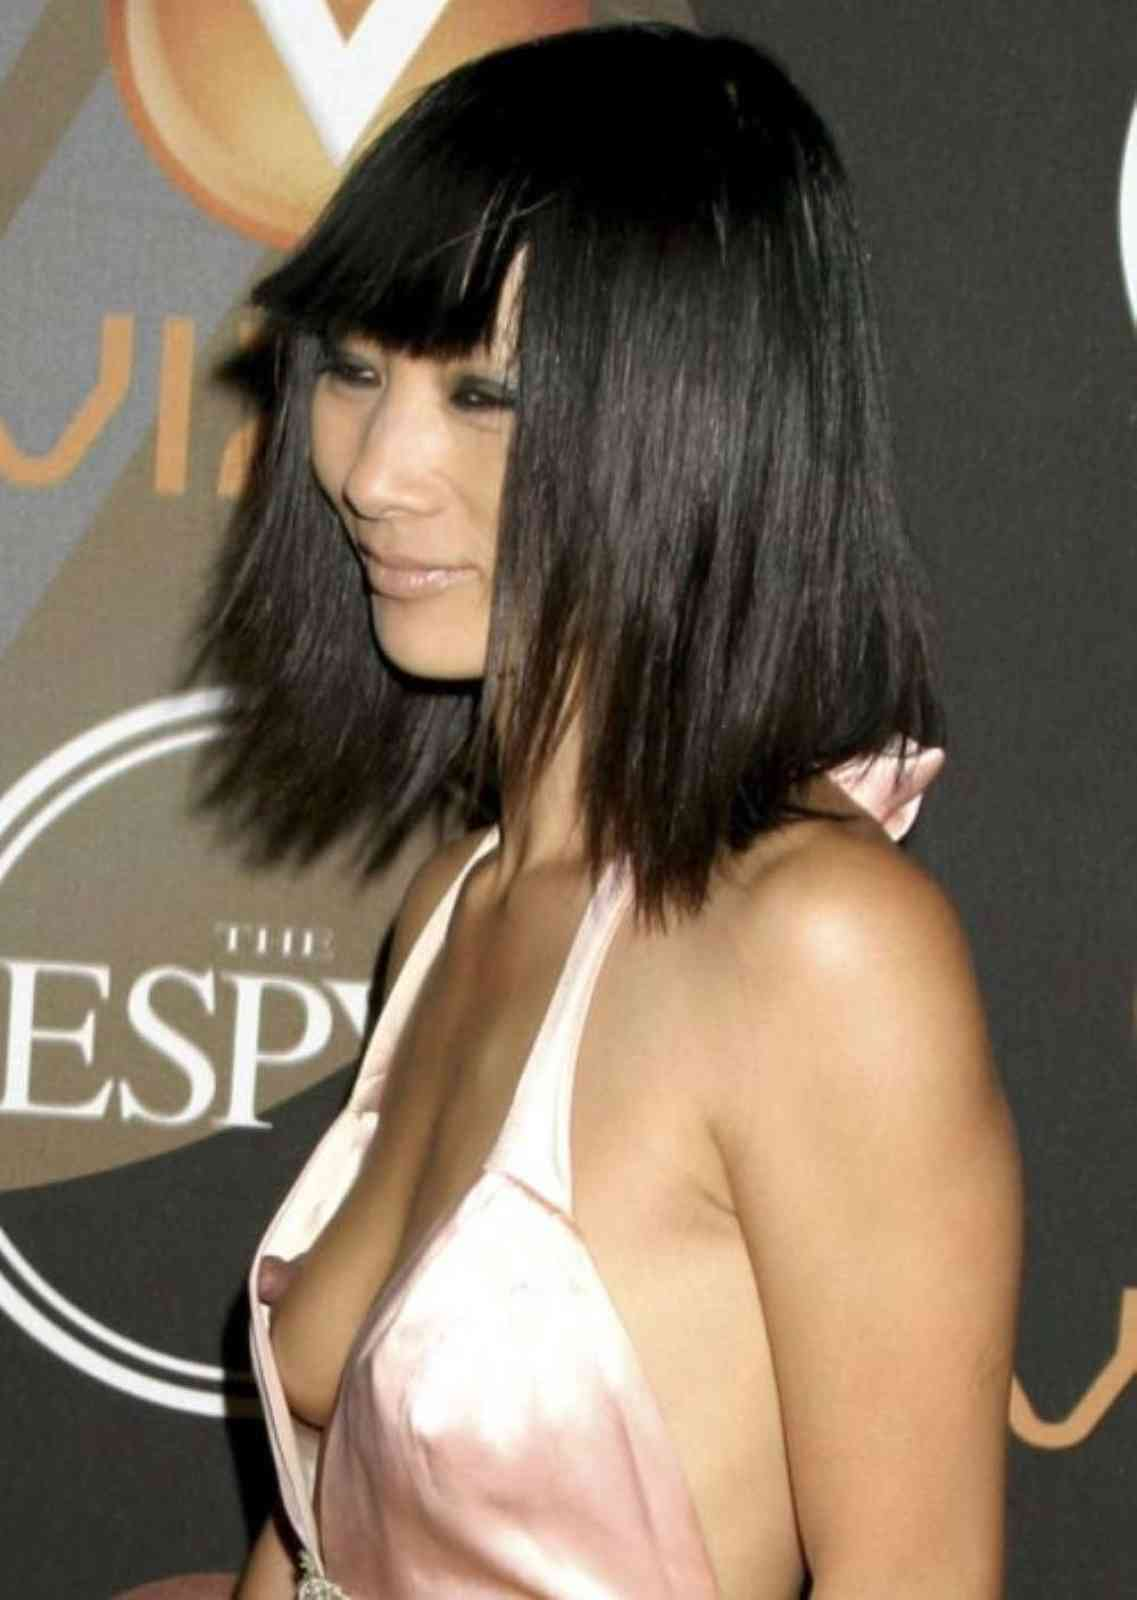 Bai Ling Nude bai ling nude pictures. rating = 8.04/10